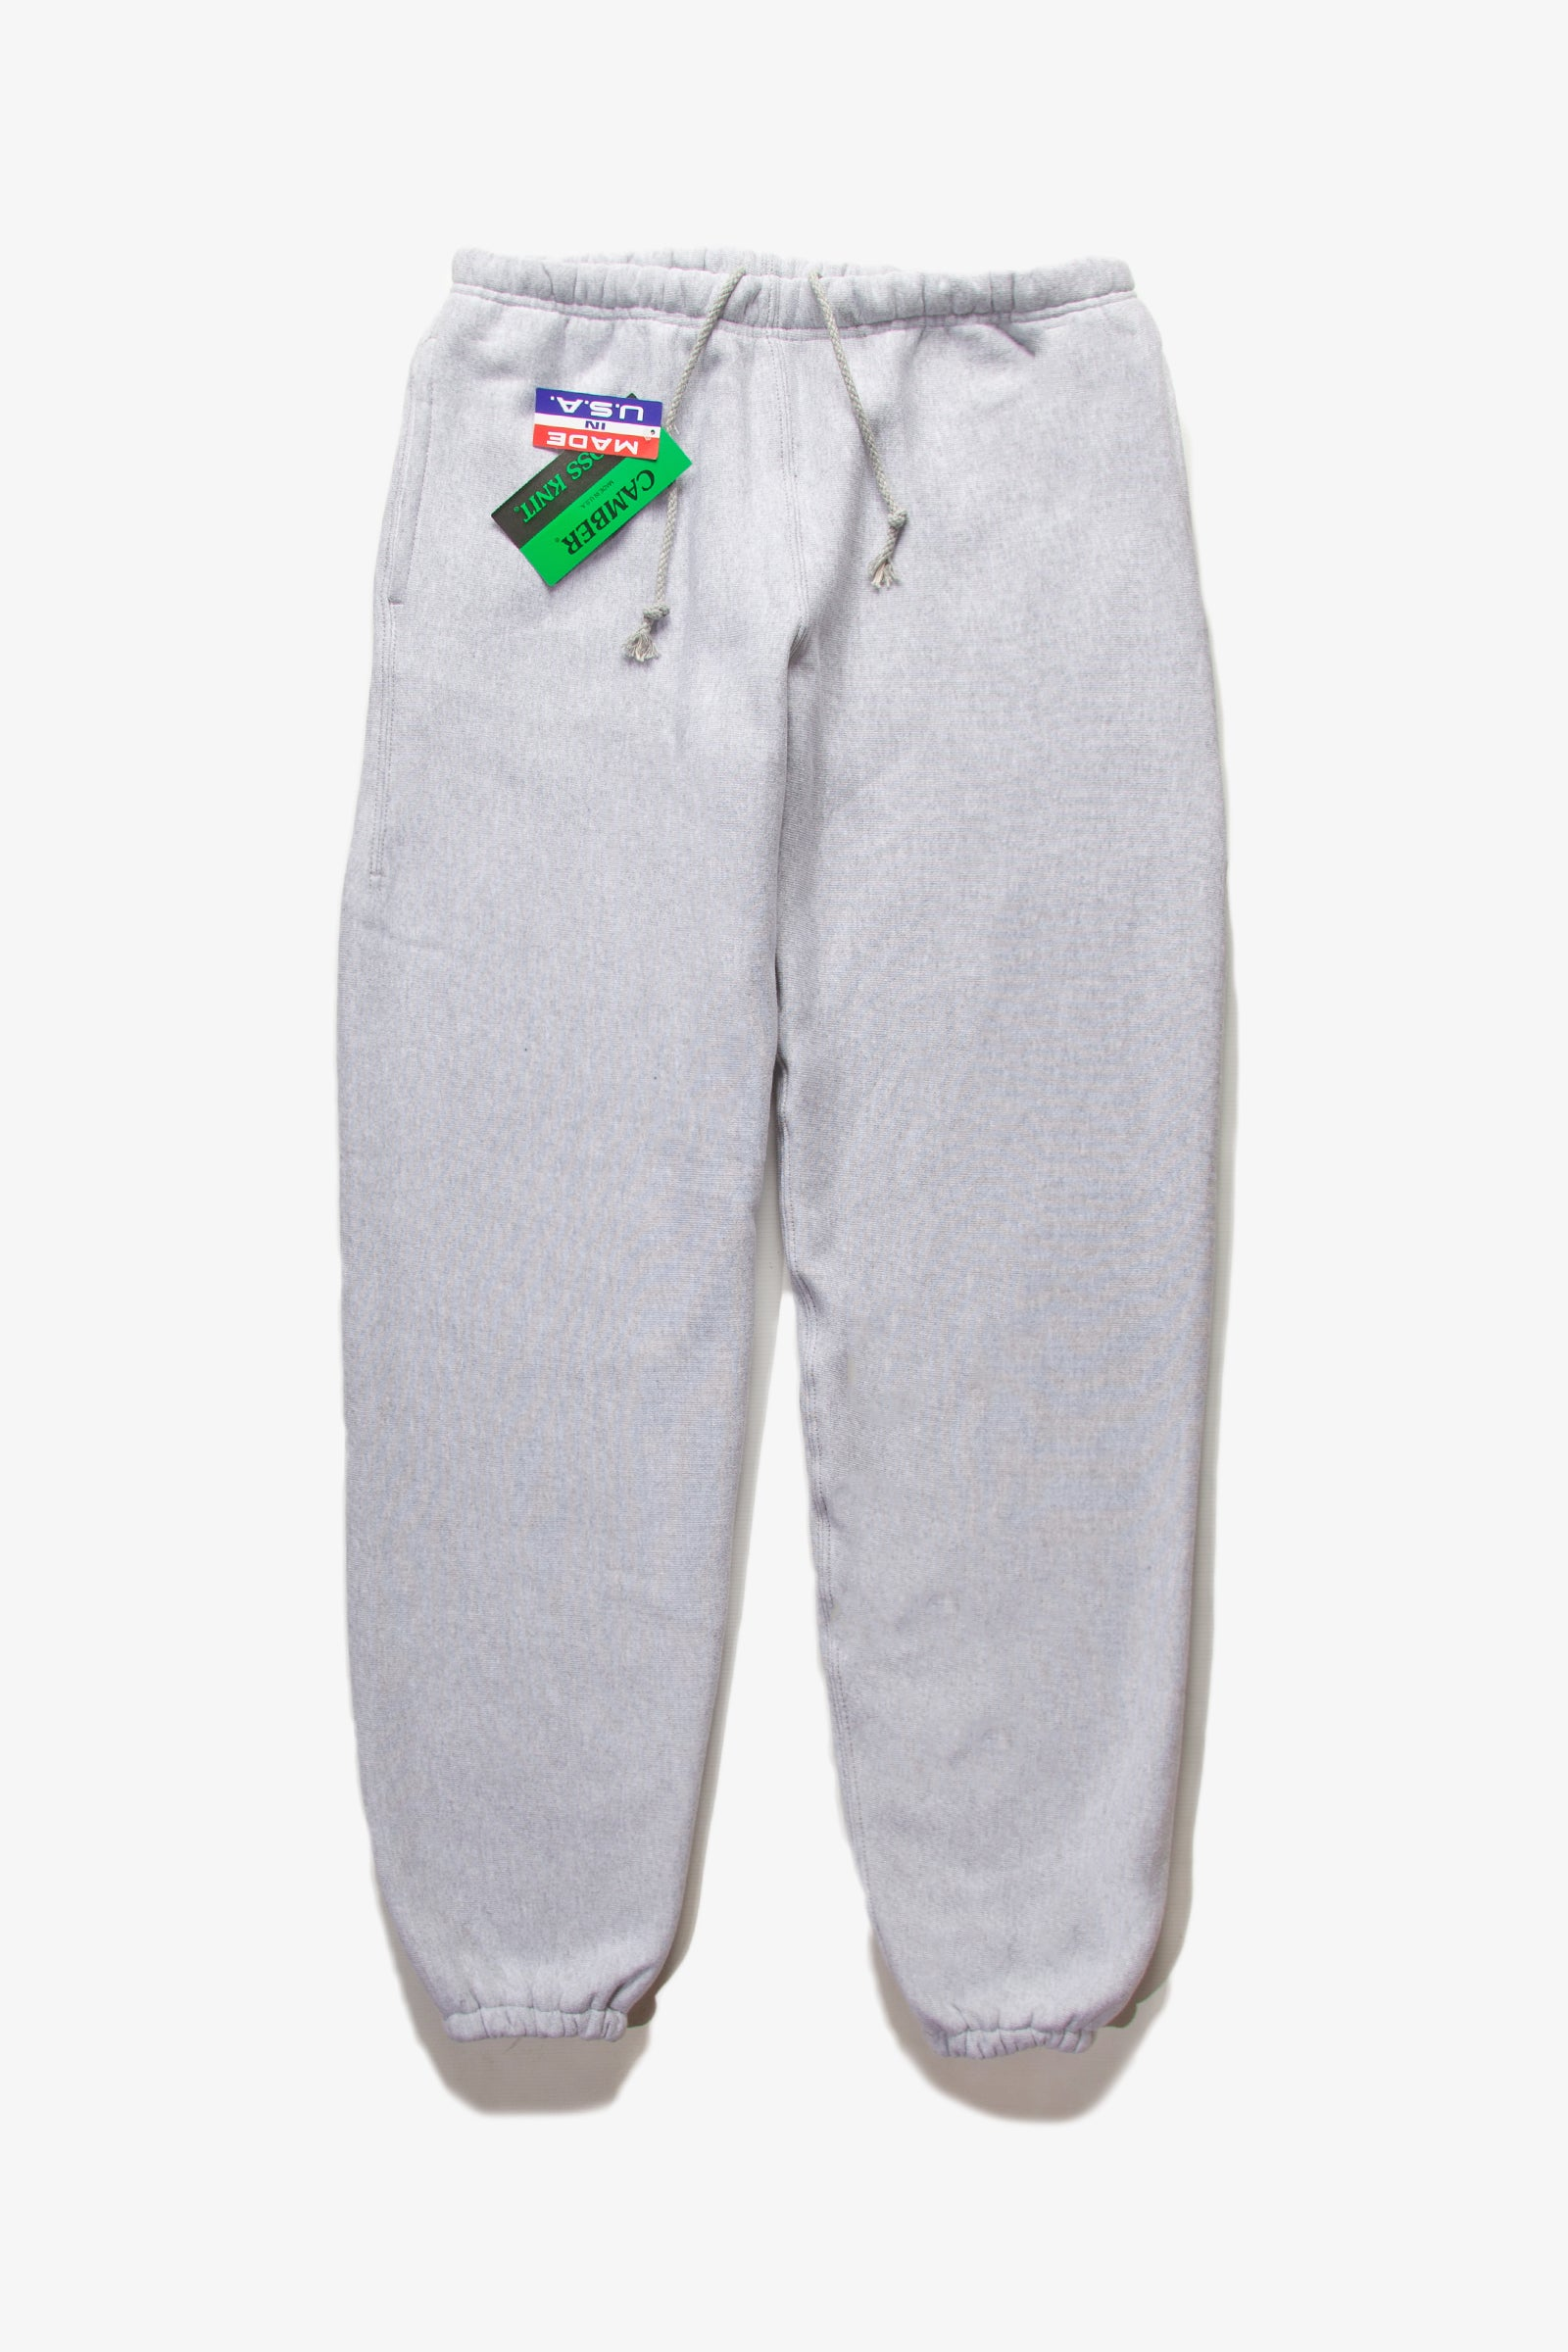 Camber USA - 233 12oz Sweatpants - Ash Grey